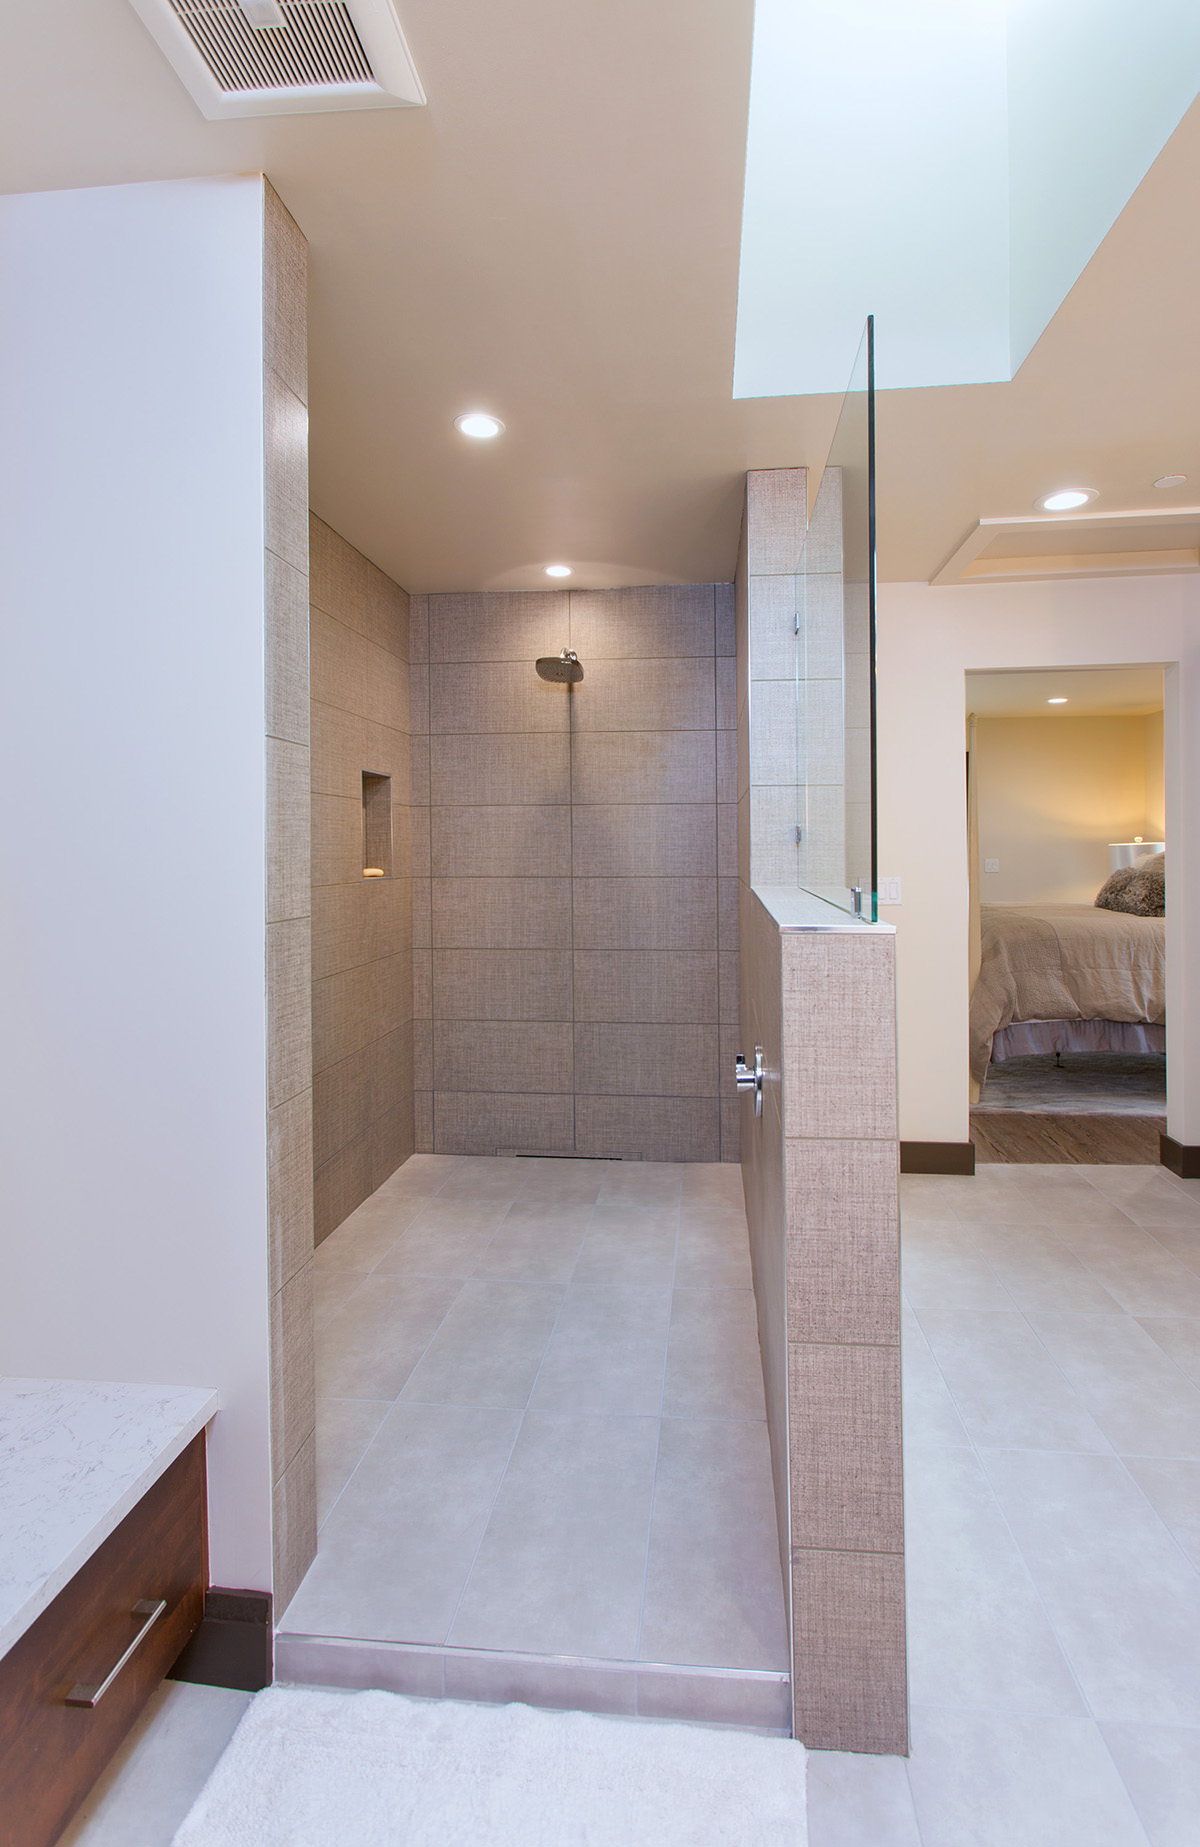 custom-walkin-shower-interior-design-los-altos-california-ktj-design-co-1.jpg